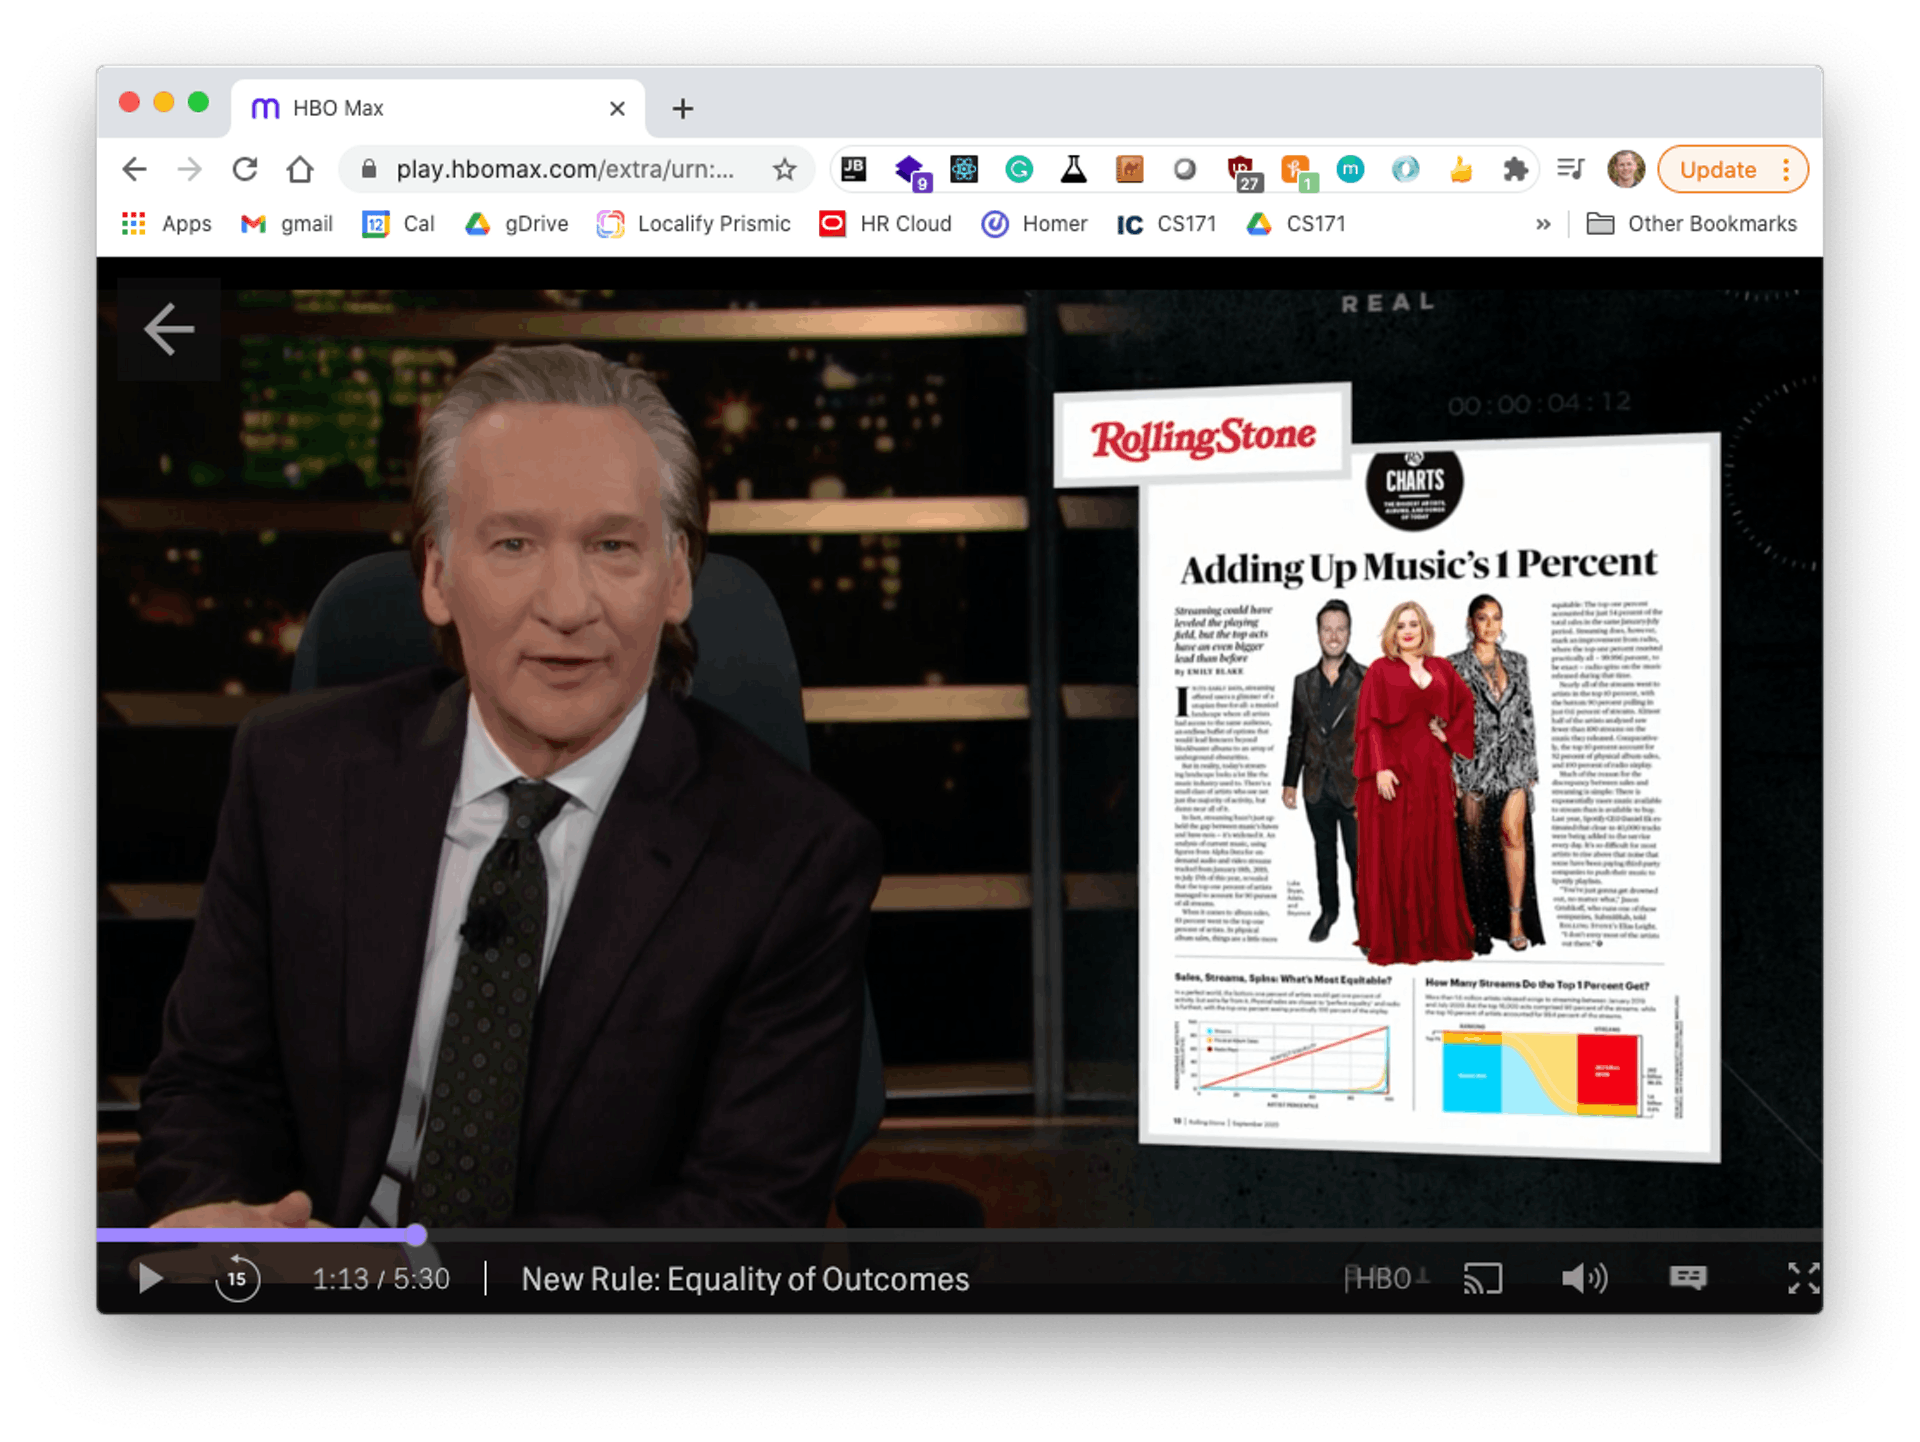 Real-time with Bill Maher talking about the Equality of Outcomes